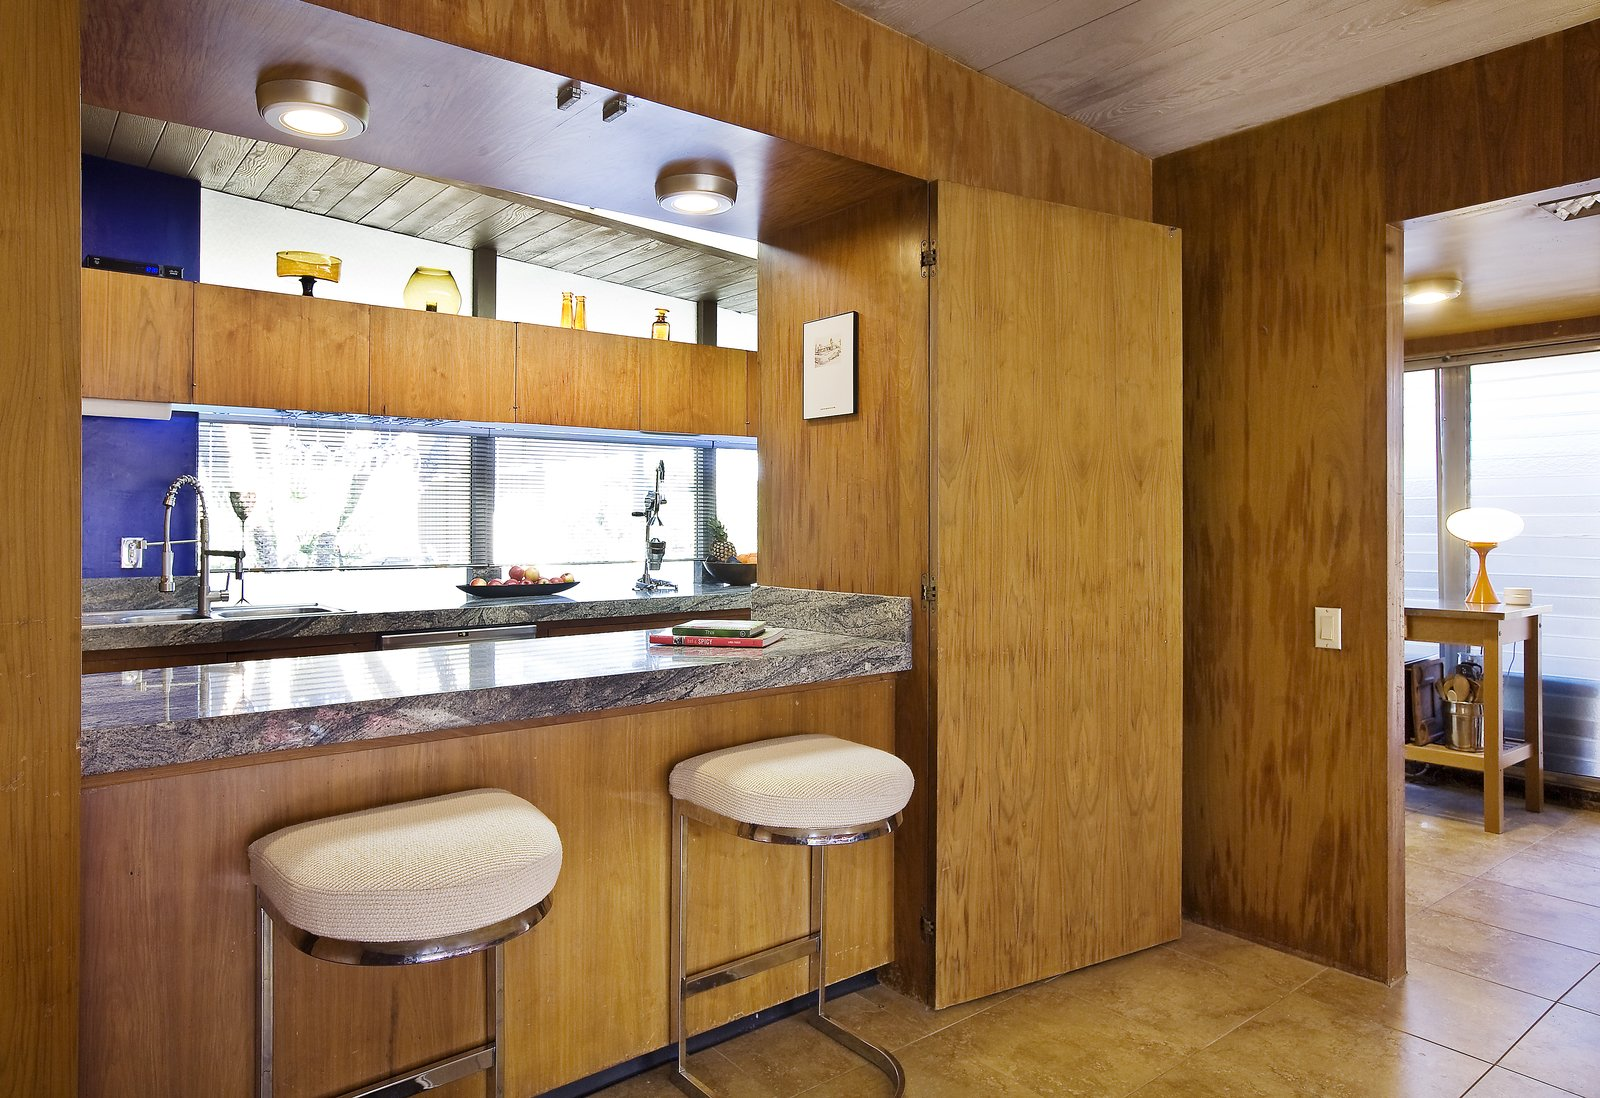 Bar seating by the kitchen.